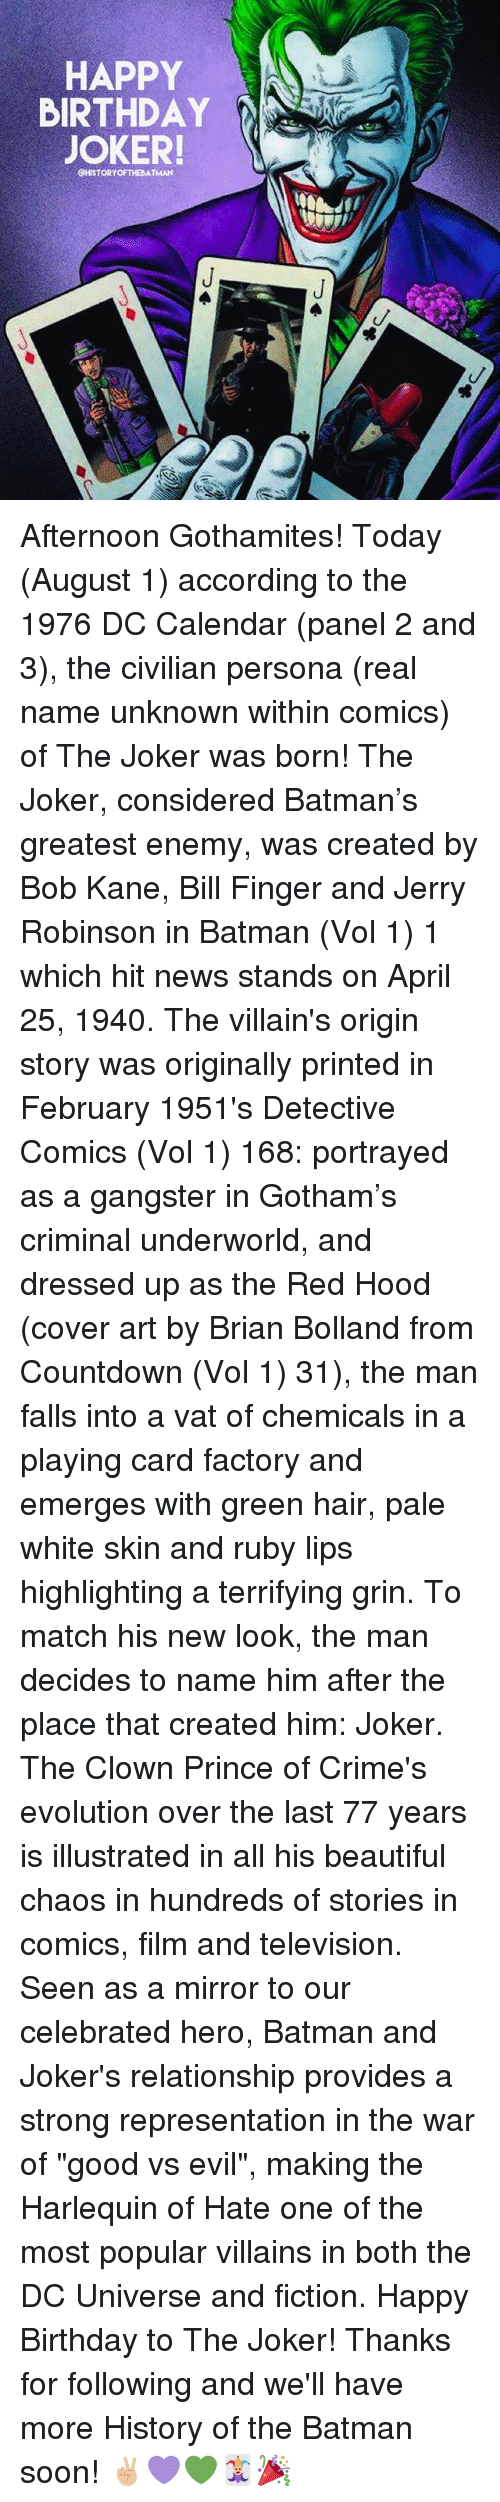 "vols: HAPPY  BIRTHDAY  JOKER!  CHISTORYOFTHEBATMAN Afternoon Gothamites! Today (August 1) according to the 1976 DC Calendar (panel 2 and 3), the civilian persona (real name unknown within comics) of The Joker was born! The Joker, considered Batman's greatest enemy, was created by Bob Kane, Bill Finger and Jerry Robinson in Batman (Vol 1) 1 which hit news stands on April 25, 1940. The villain's origin story was originally printed in February 1951's Detective Comics (Vol 1) 168: portrayed as a gangster in Gotham's criminal underworld, and dressed up as the Red Hood (cover art by Brian Bolland from Countdown (Vol 1) 31), the man falls into a vat of chemicals in a playing card factory and emerges with green hair, pale white skin and ruby lips highlighting a terrifying grin. To match his new look, the man decides to name him after the place that created him: Joker. The Clown Prince of Crime's evolution over the last 77 years is illustrated in all his beautiful chaos in hundreds of stories in comics, film and television. Seen as a mirror to our celebrated hero, Batman and Joker's relationship provides a strong representation in the war of ""good vs evil"", making the Harlequin of Hate one of the most popular villains in both the DC Universe and fiction. Happy Birthday to The Joker! Thanks for following and we'll have more History of the Batman soon! ✌🏼💜💚🃏🎉"